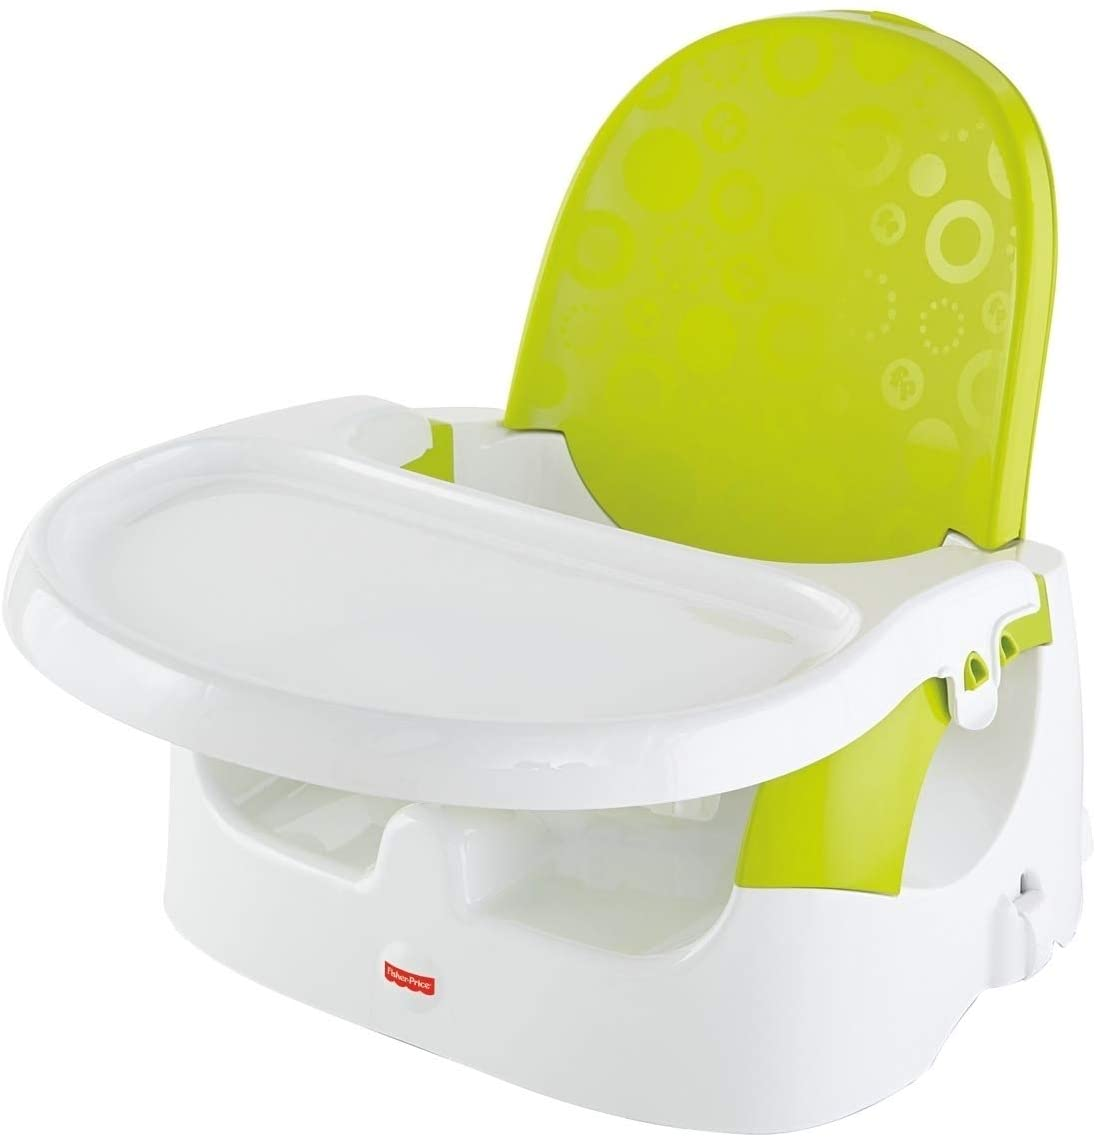 baby-fair Fisher Price Quick-Clean Portable Booster